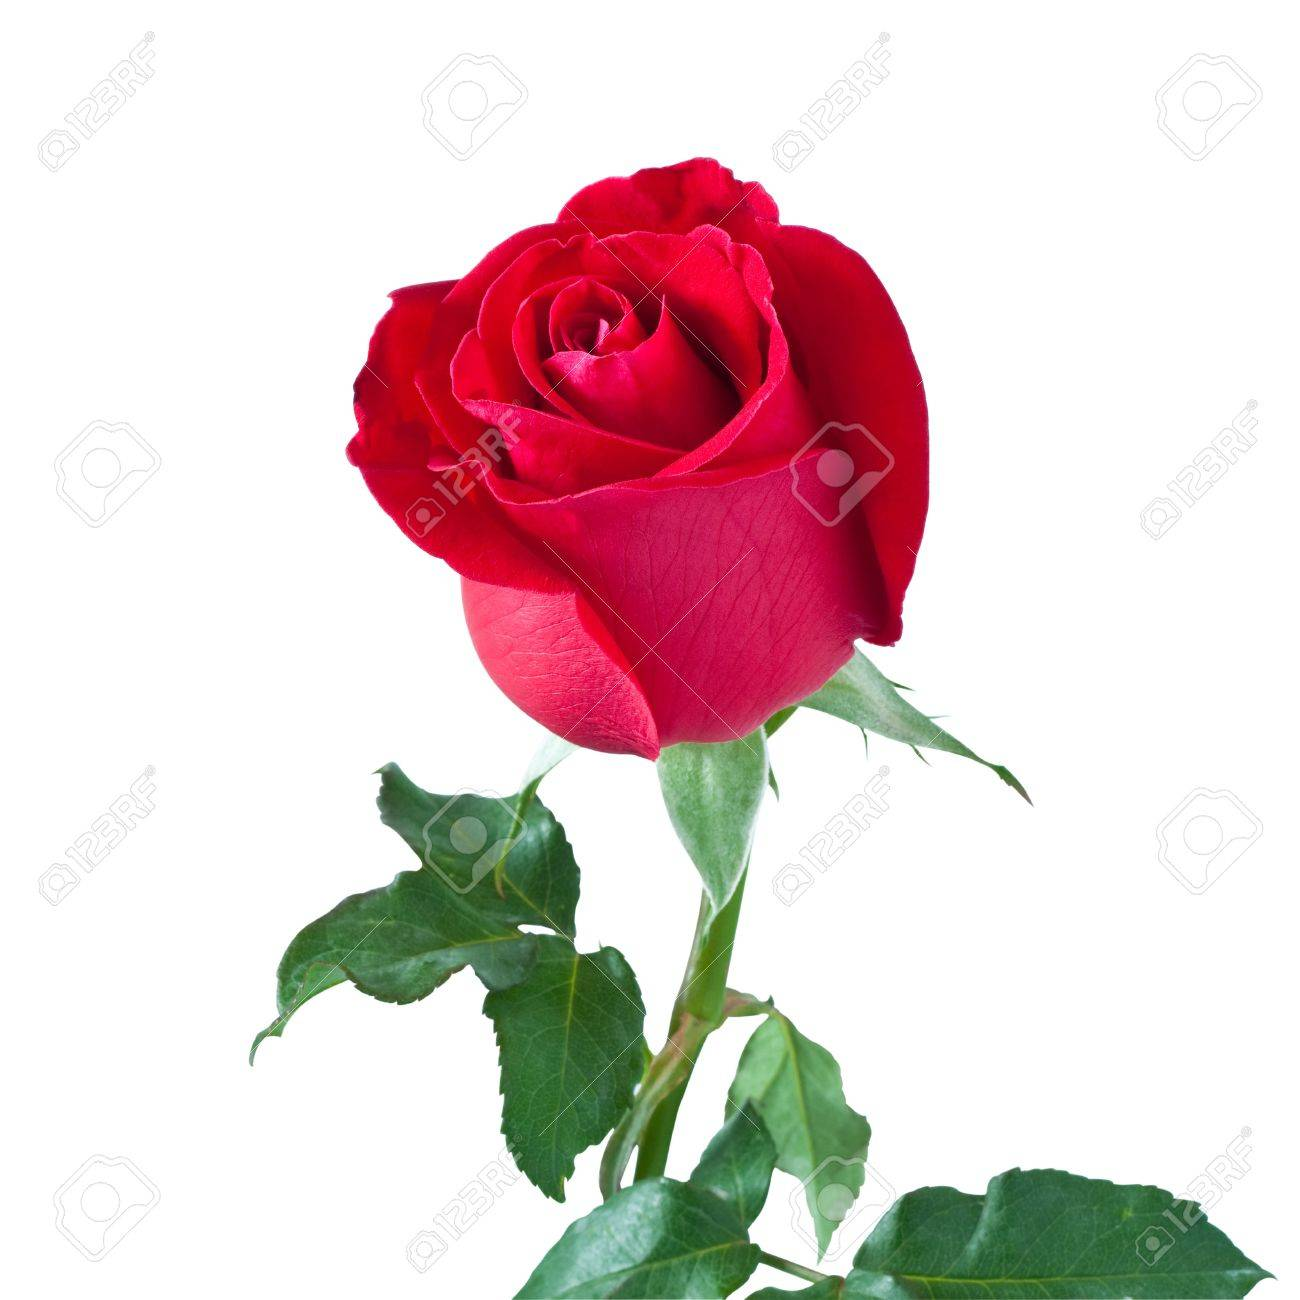 beautiful red rose isolated on white background,with clipping path Stock Photo - 17255059